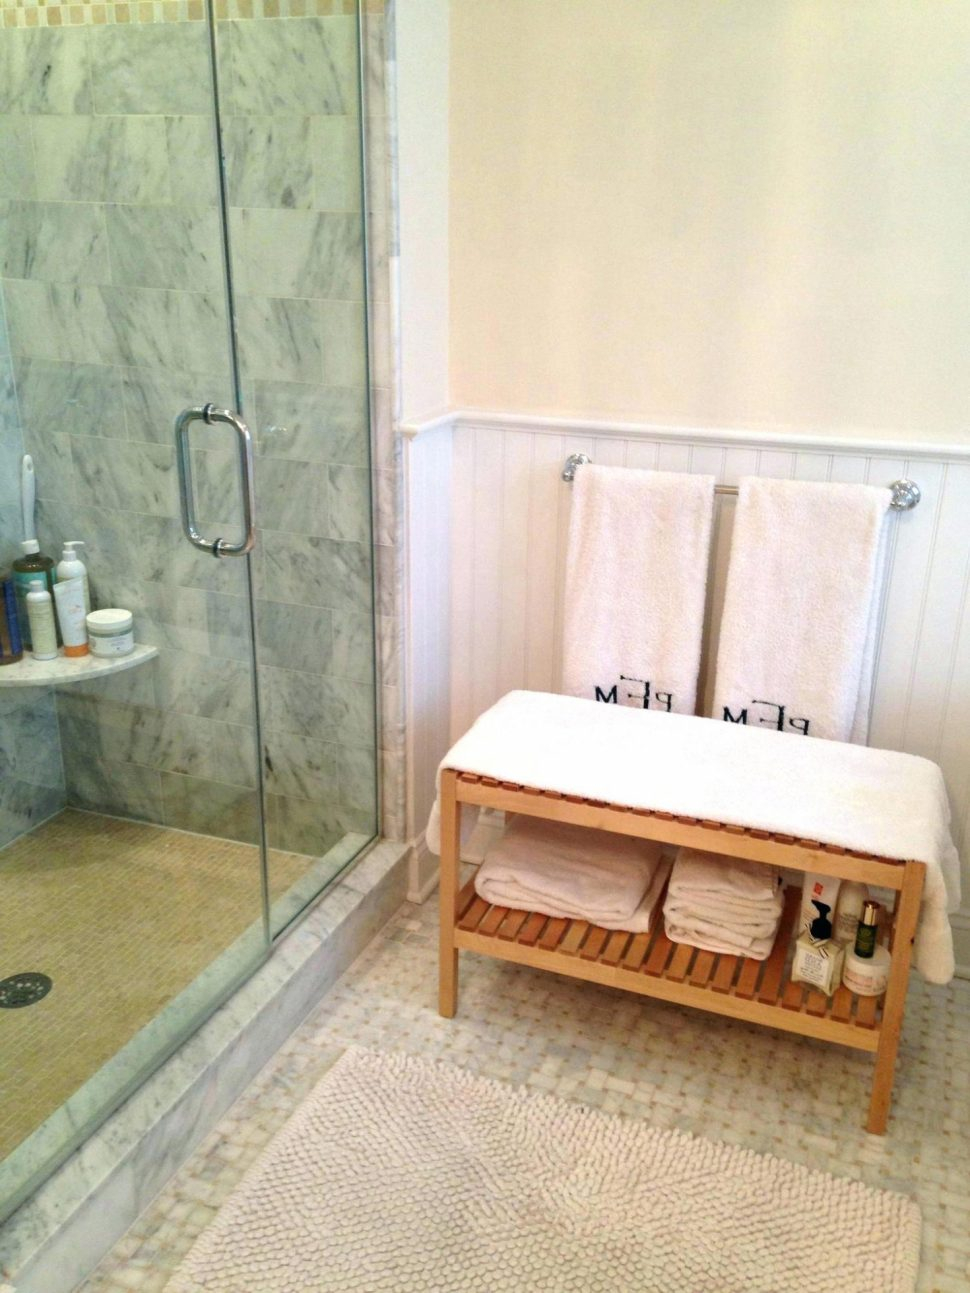 Lovely Bench : Bathroom Vanity Bench Wood Storage Ideas Gammaphibetaocu throughout Bathroom Bench Ideas